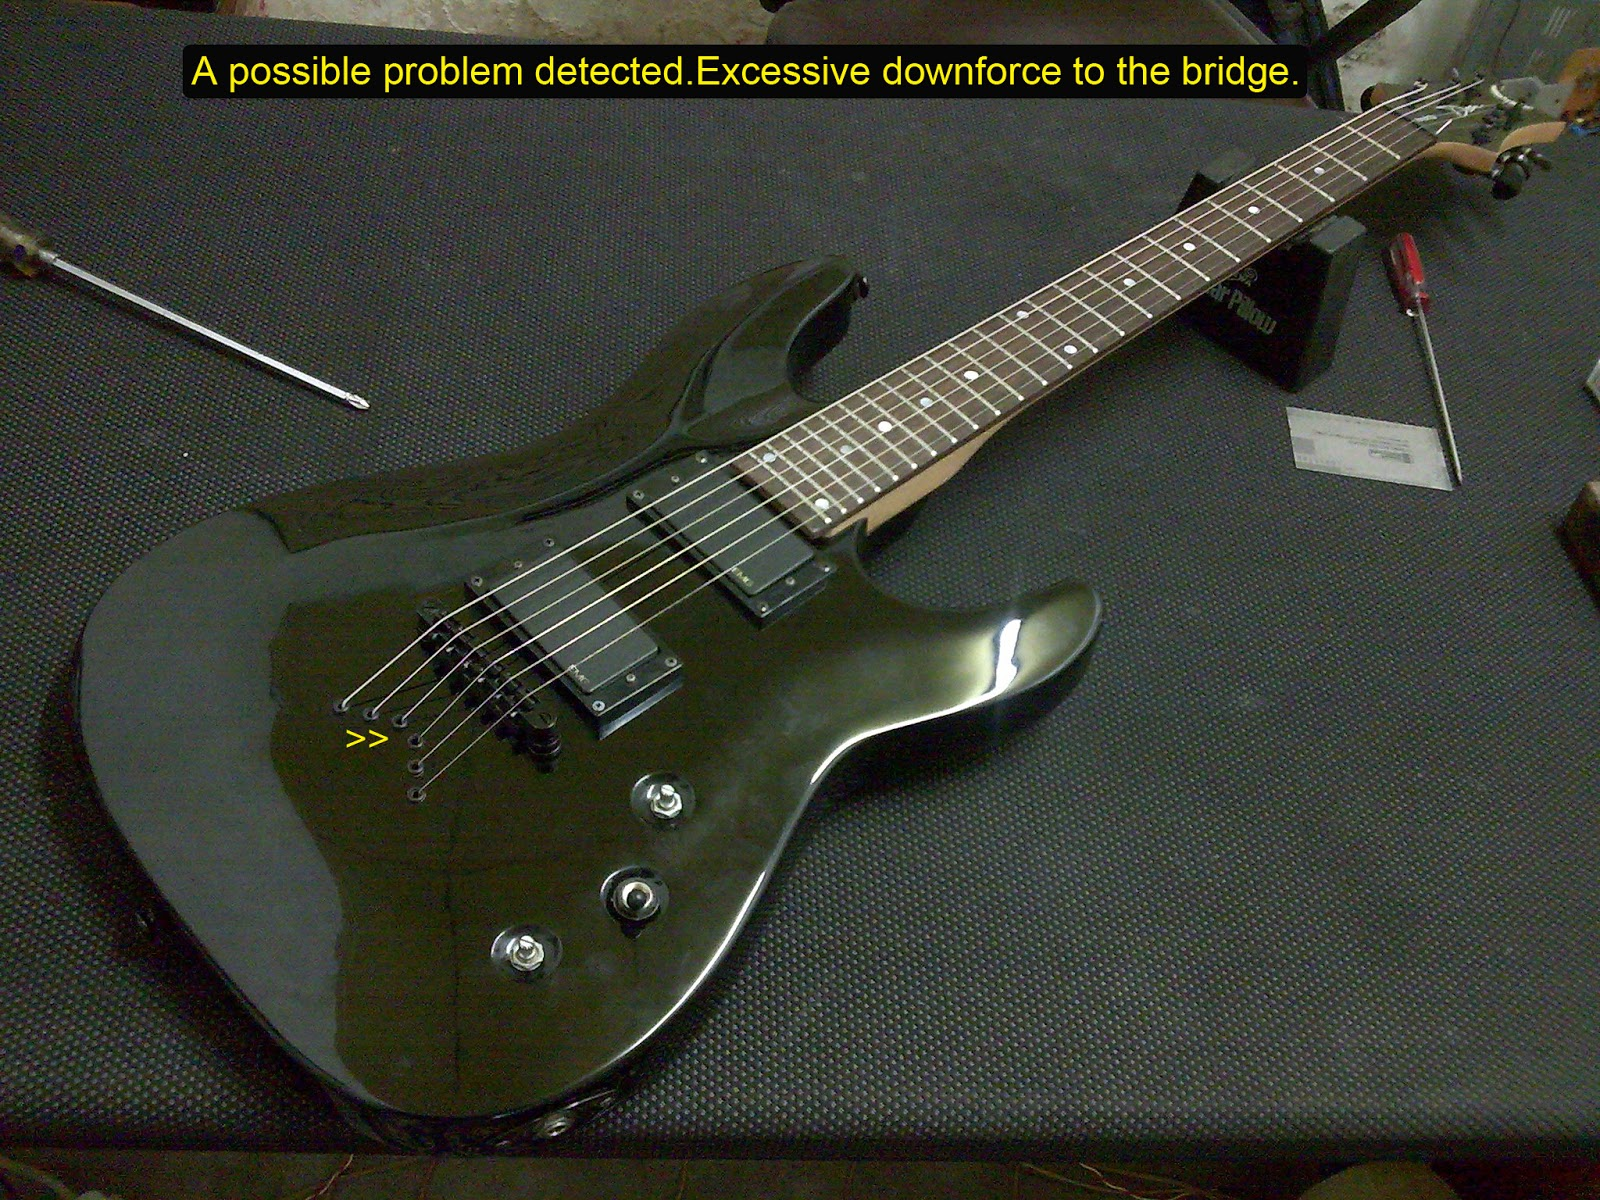 yustech gt guitars and basses solution a bridge too far guitar bridge and string ferules issues. Black Bedroom Furniture Sets. Home Design Ideas